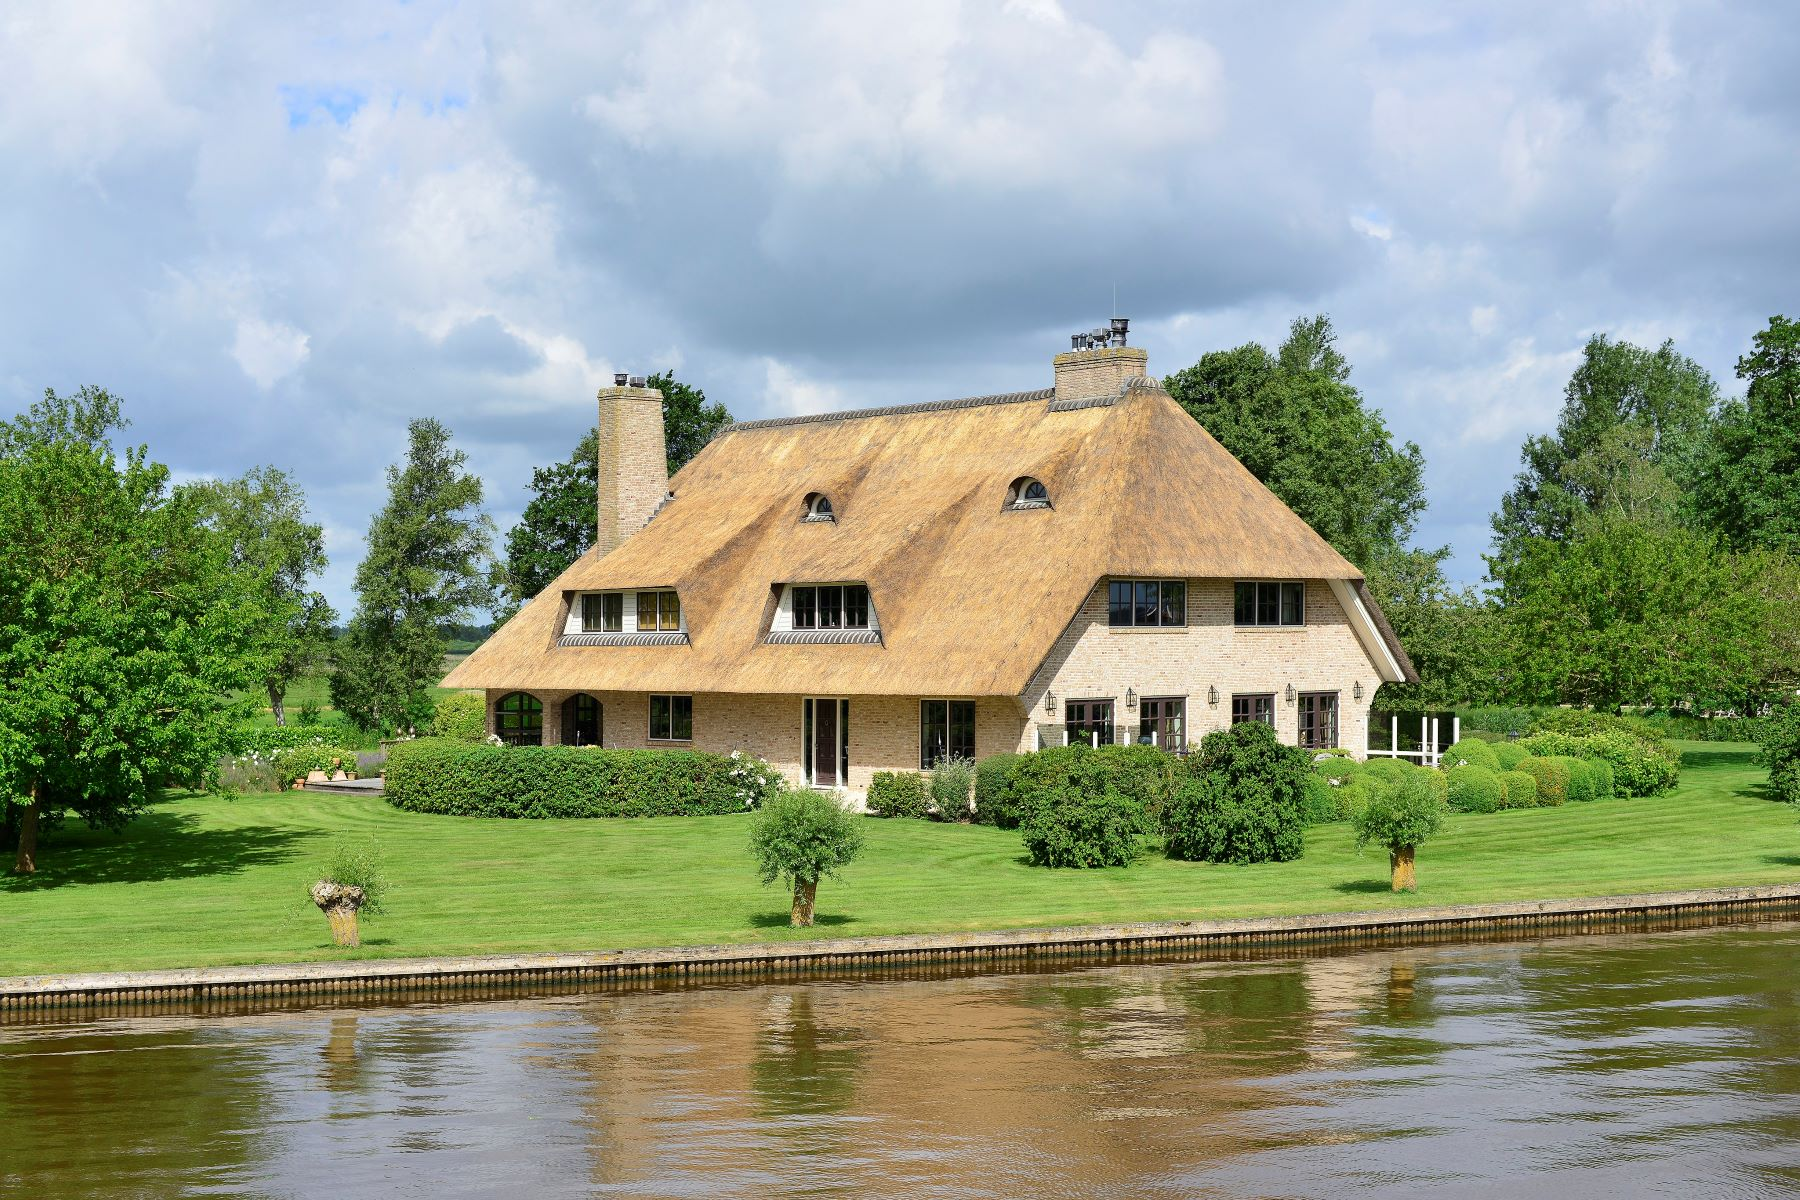 Maison unifamiliale pour l Vente à Countryhouse with thatched roof Wetering West 45 Wetering, Overijssel, 8363 TM Pays-Bas